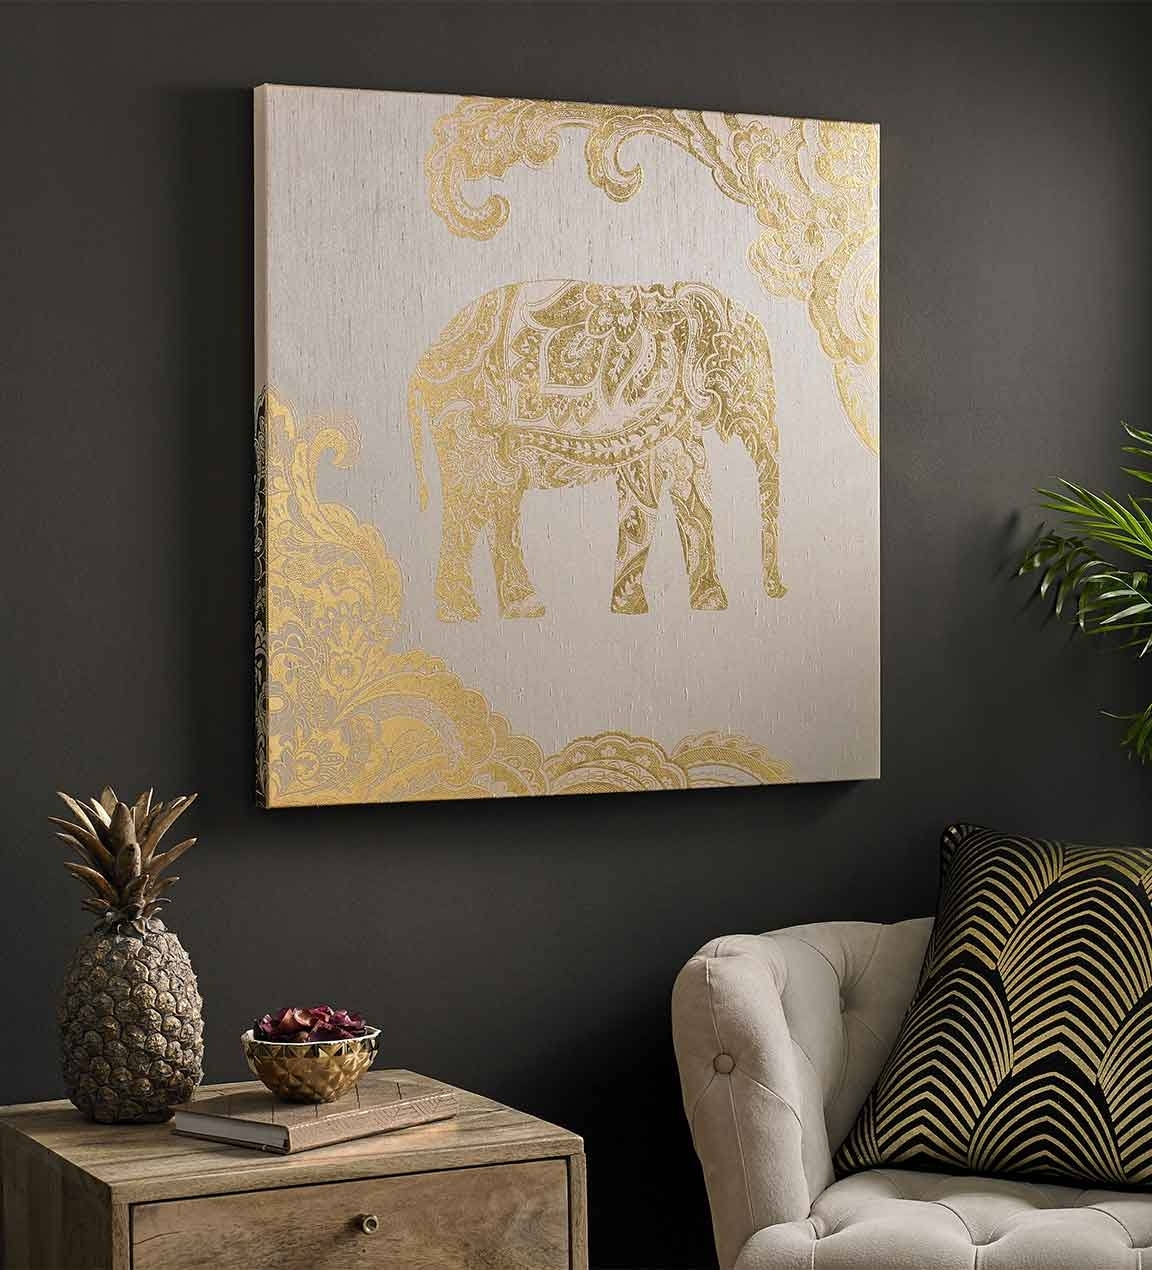 Wall Art | Wall Decor | Home And Office Decor For 2018 Art Wall Decor (Gallery 7 of 20)